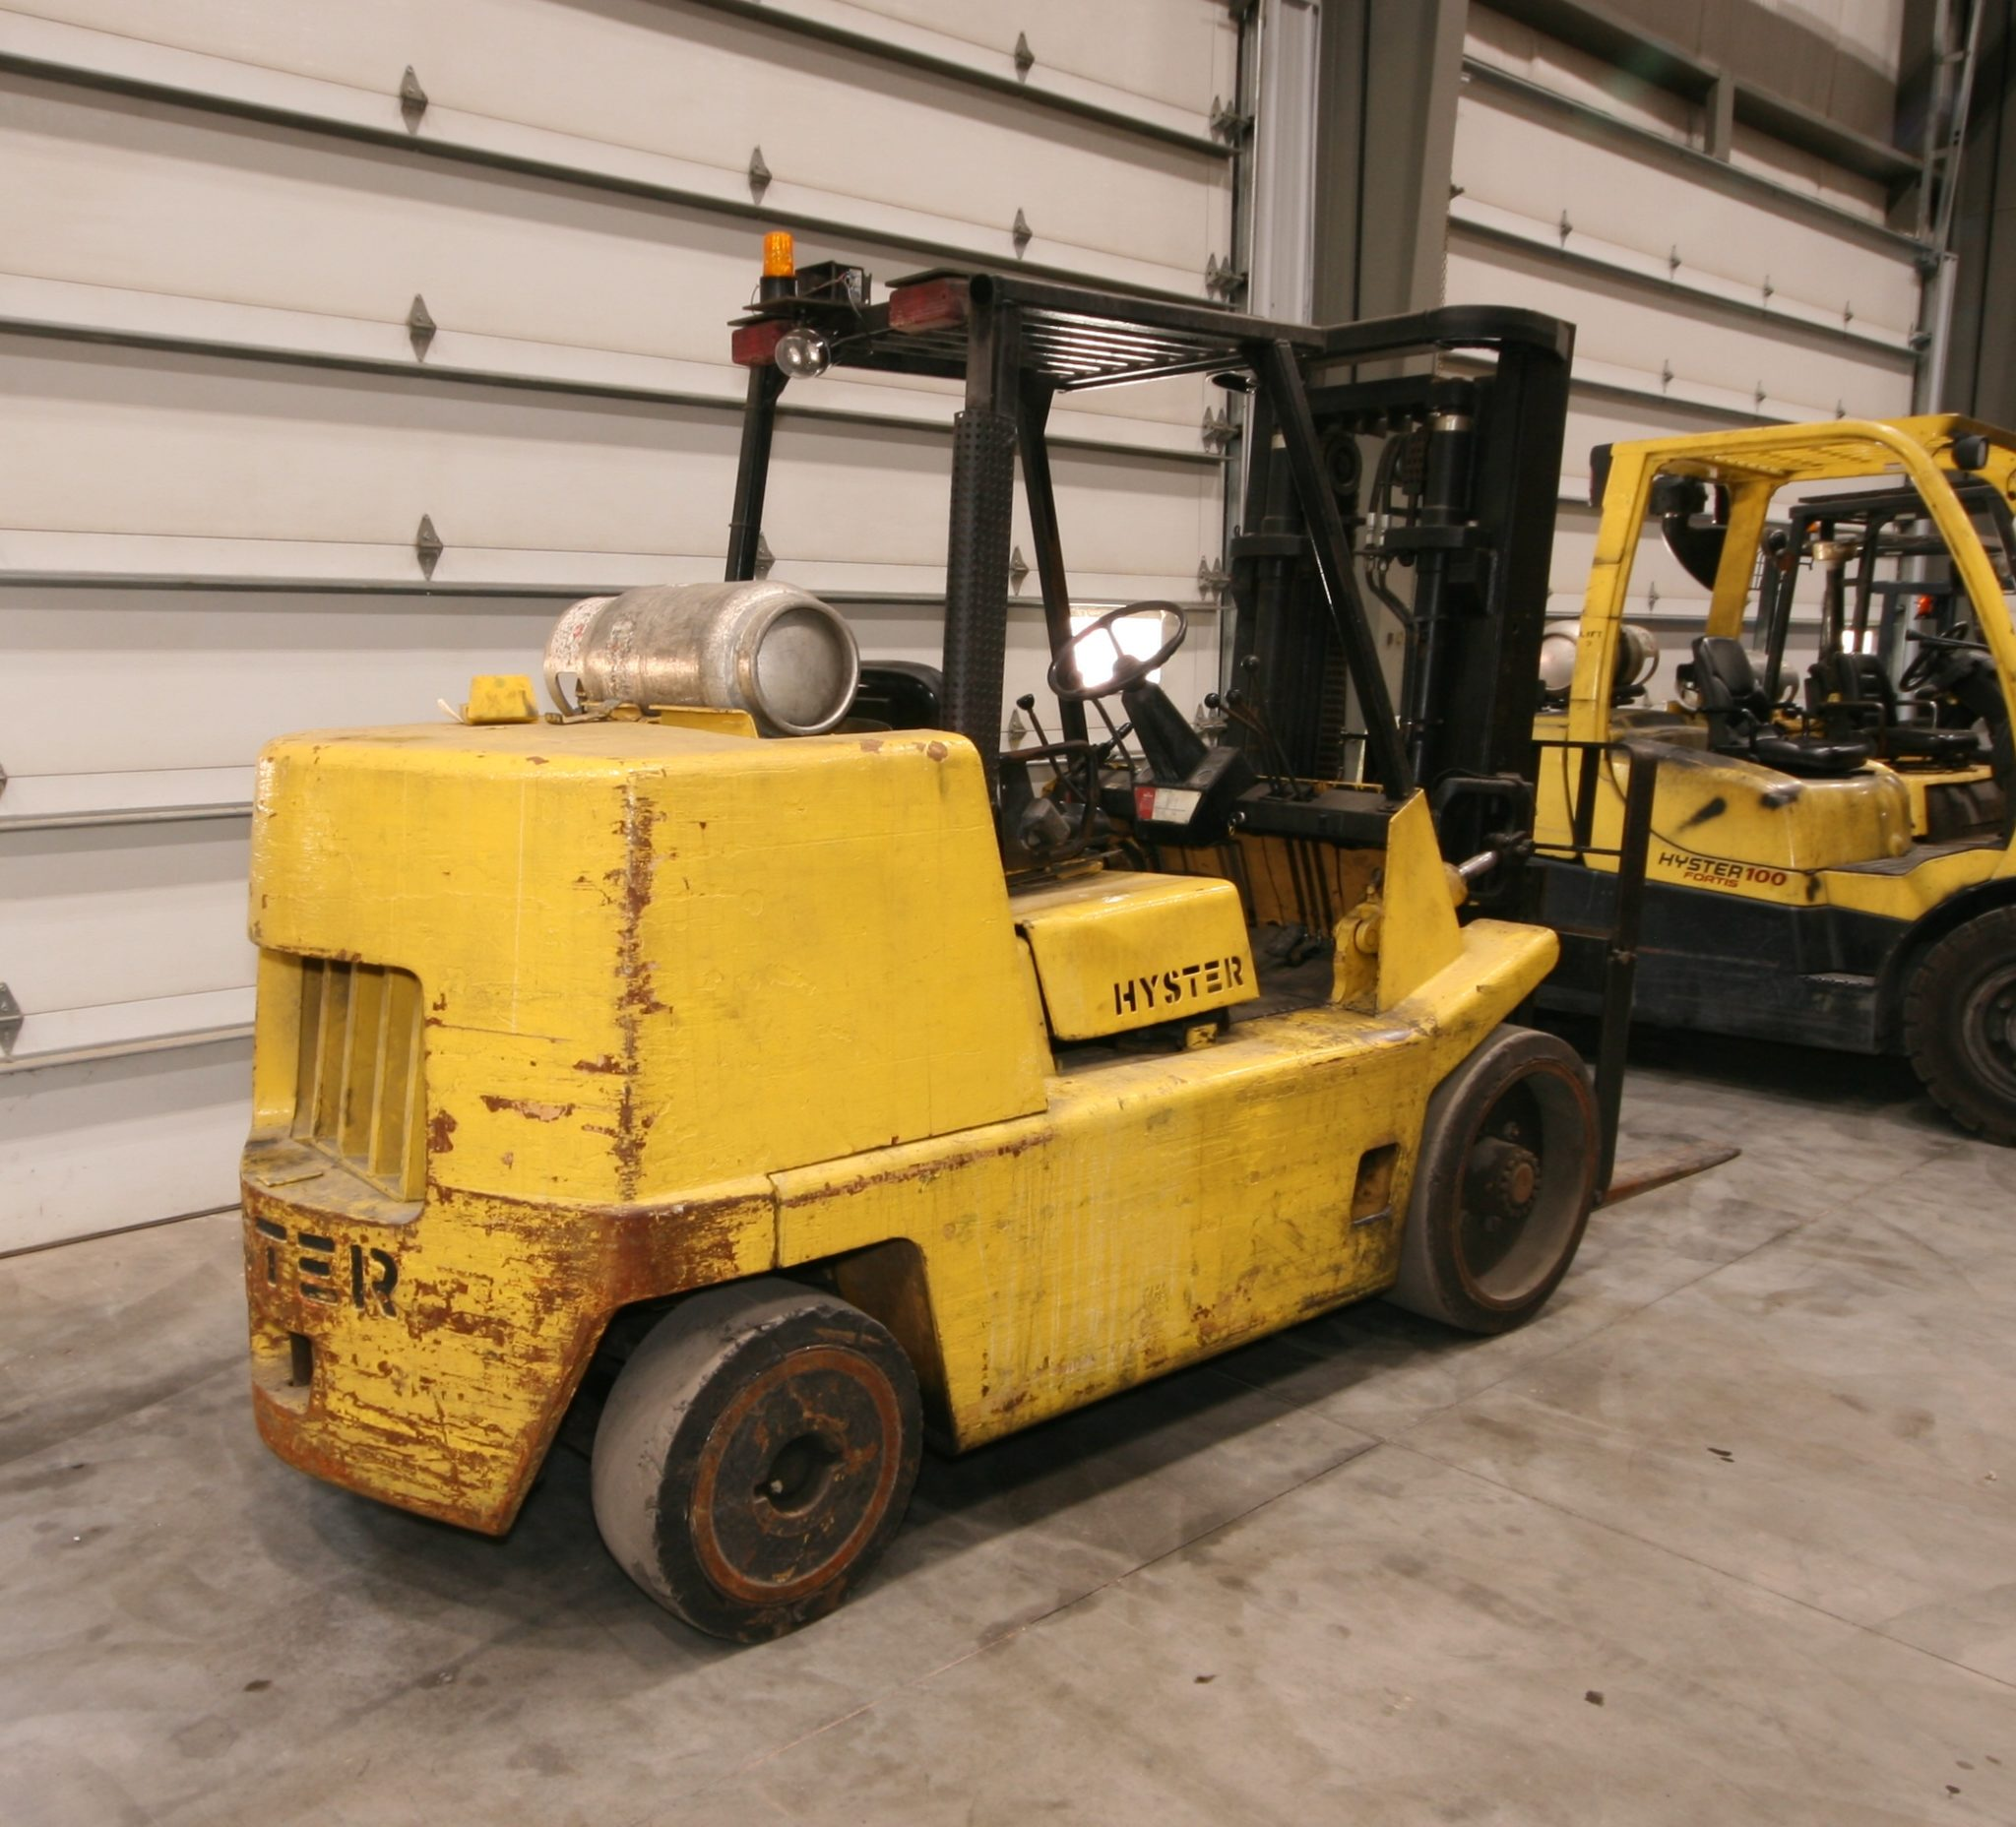 Hyster 15,000 lbs. Capacity Forklift ...